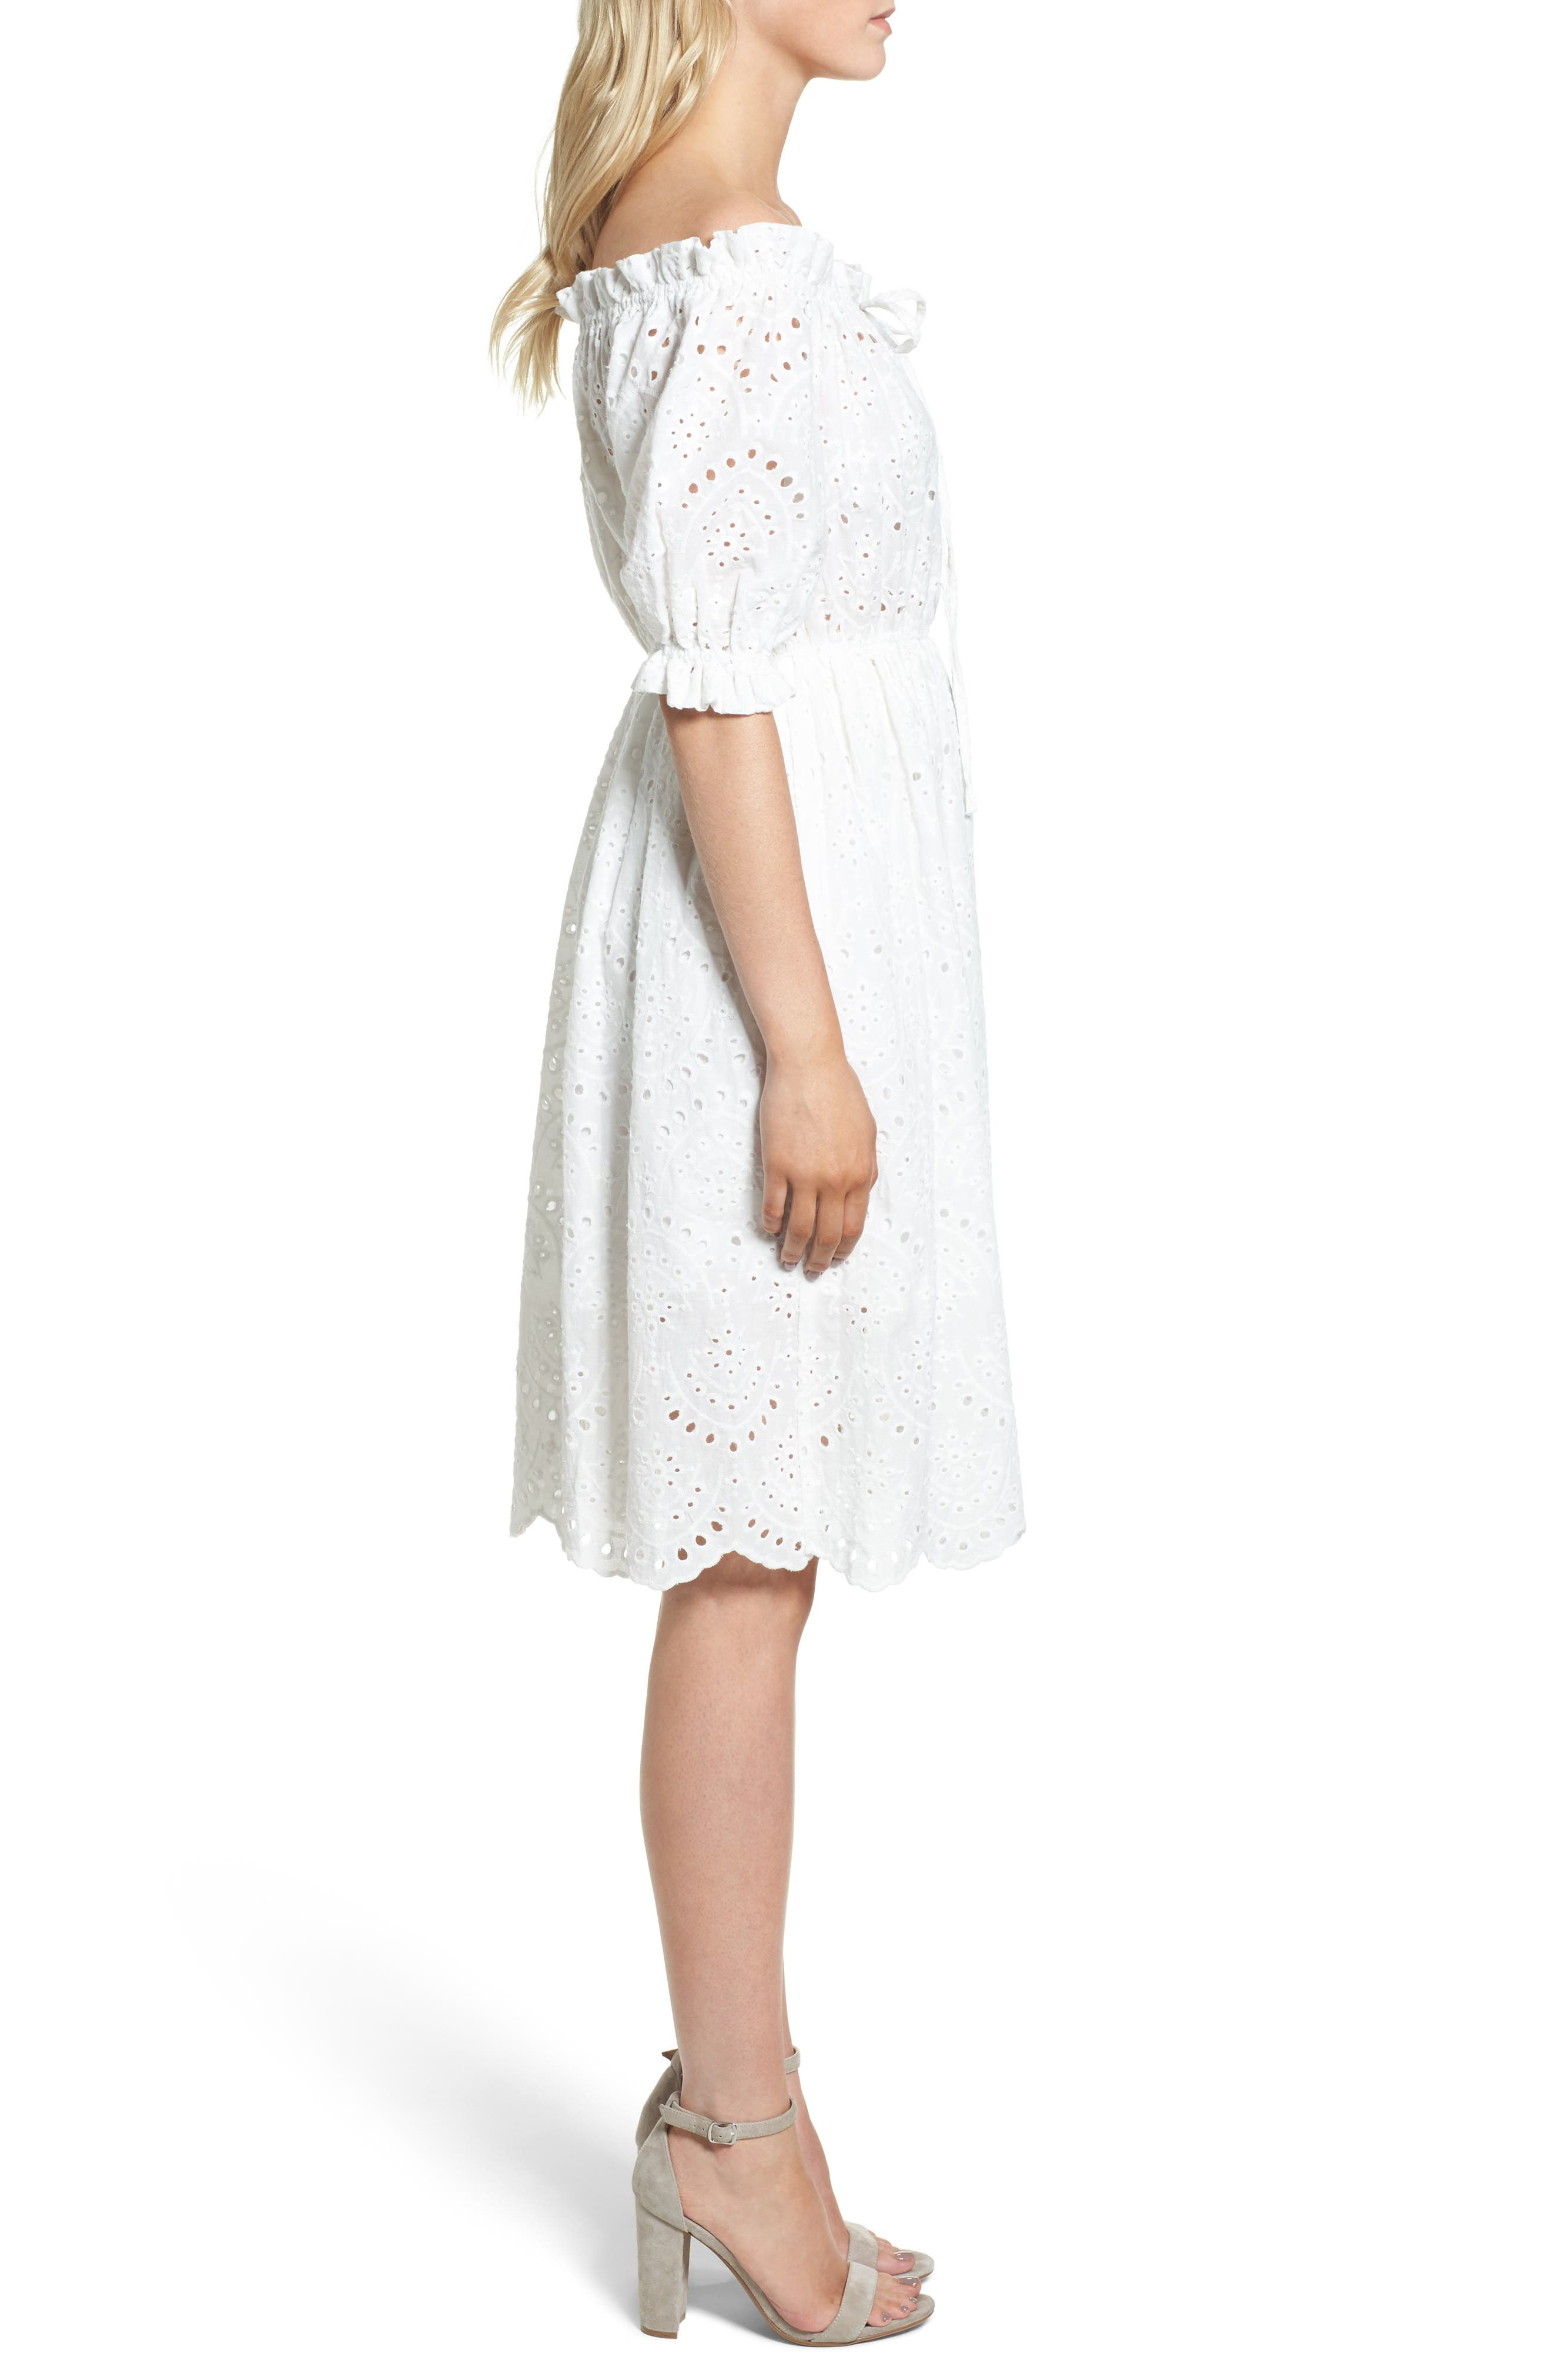 The White Party Off the Shoulder Dress,                             Alternate thumbnail 3, color,                             100